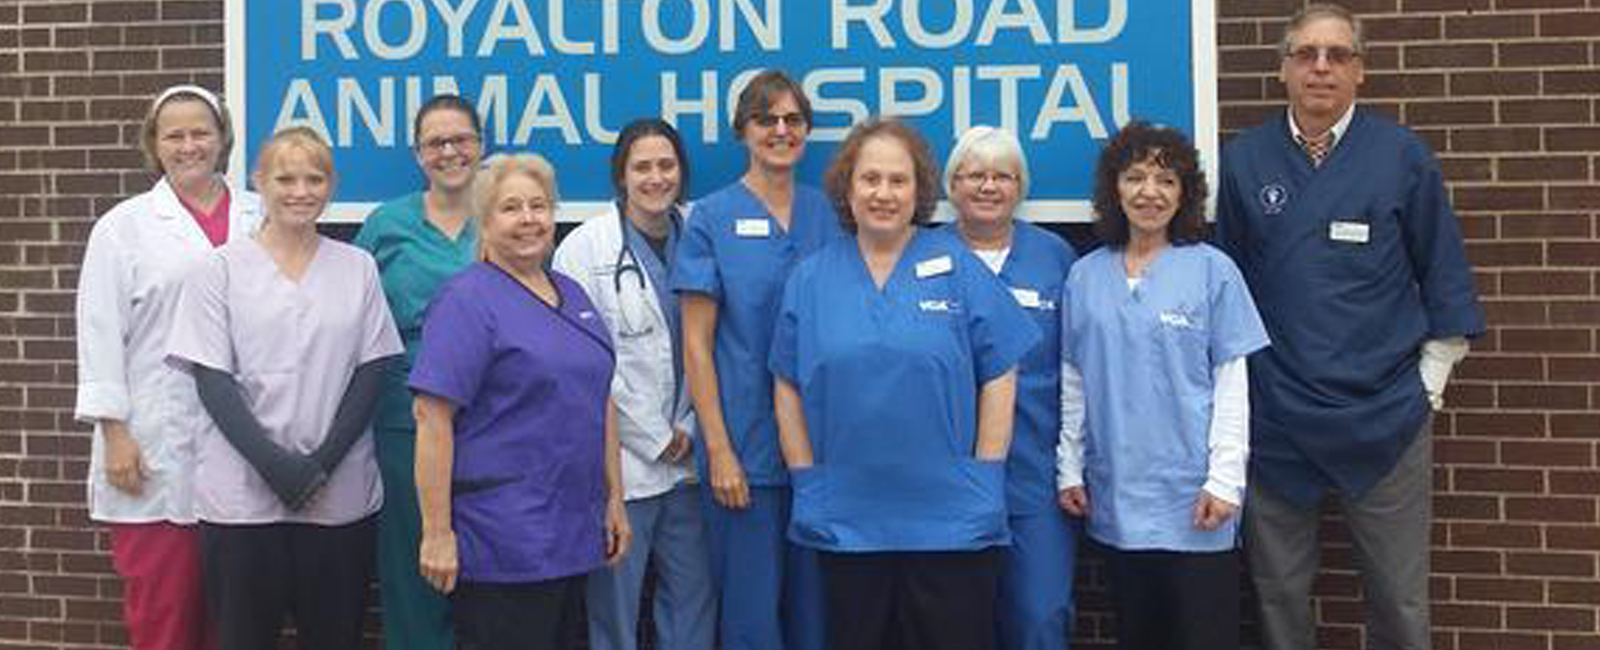 Homepage Team Picture of VCA York Royalton Animal Hospital